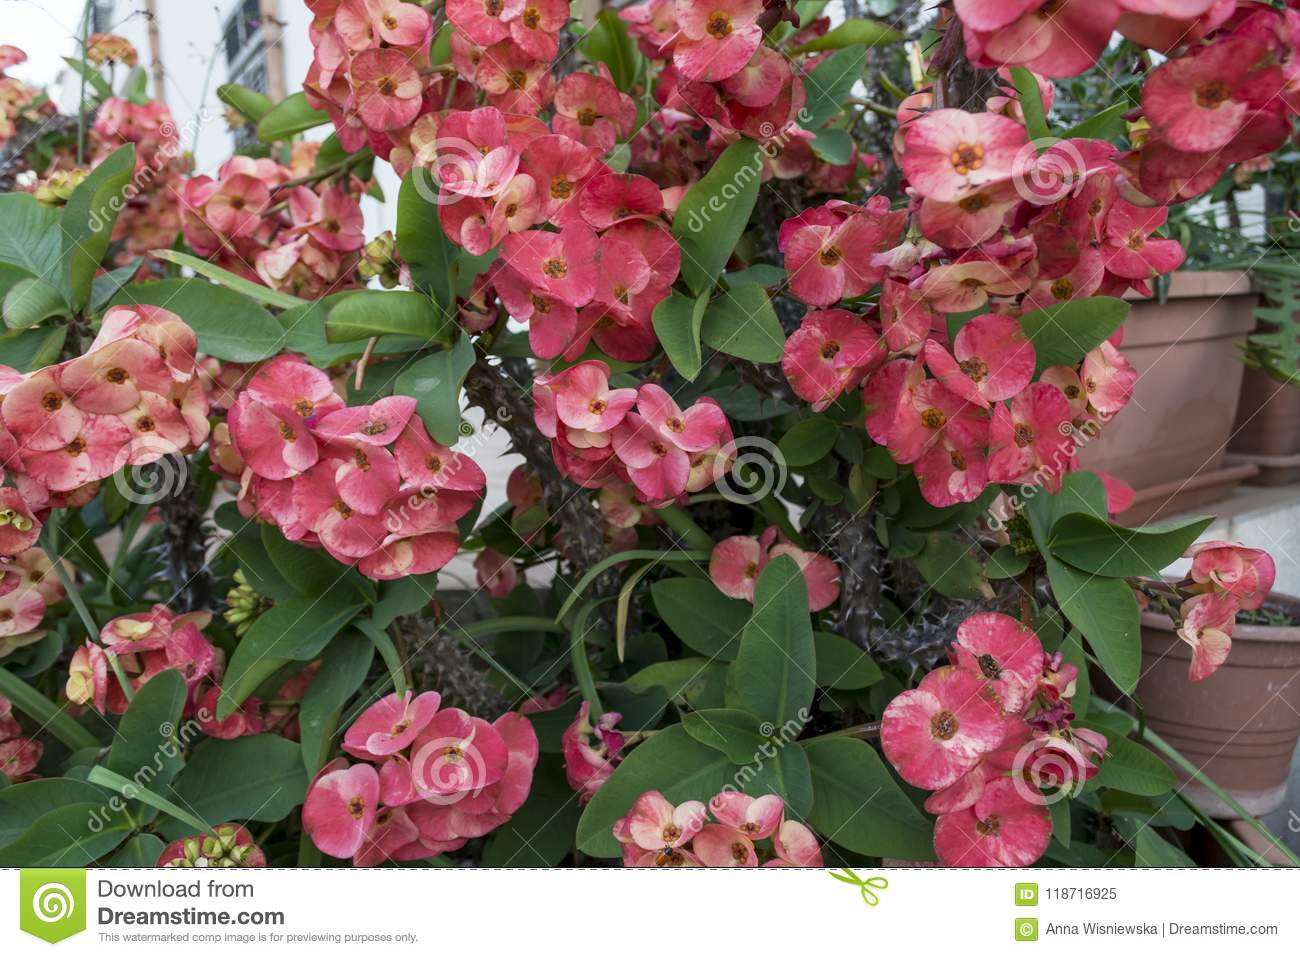 Euphorbia multi crown of thorns red flowers stock image image of euphorbia multi crown of thorns red flowers bush mightylinksfo